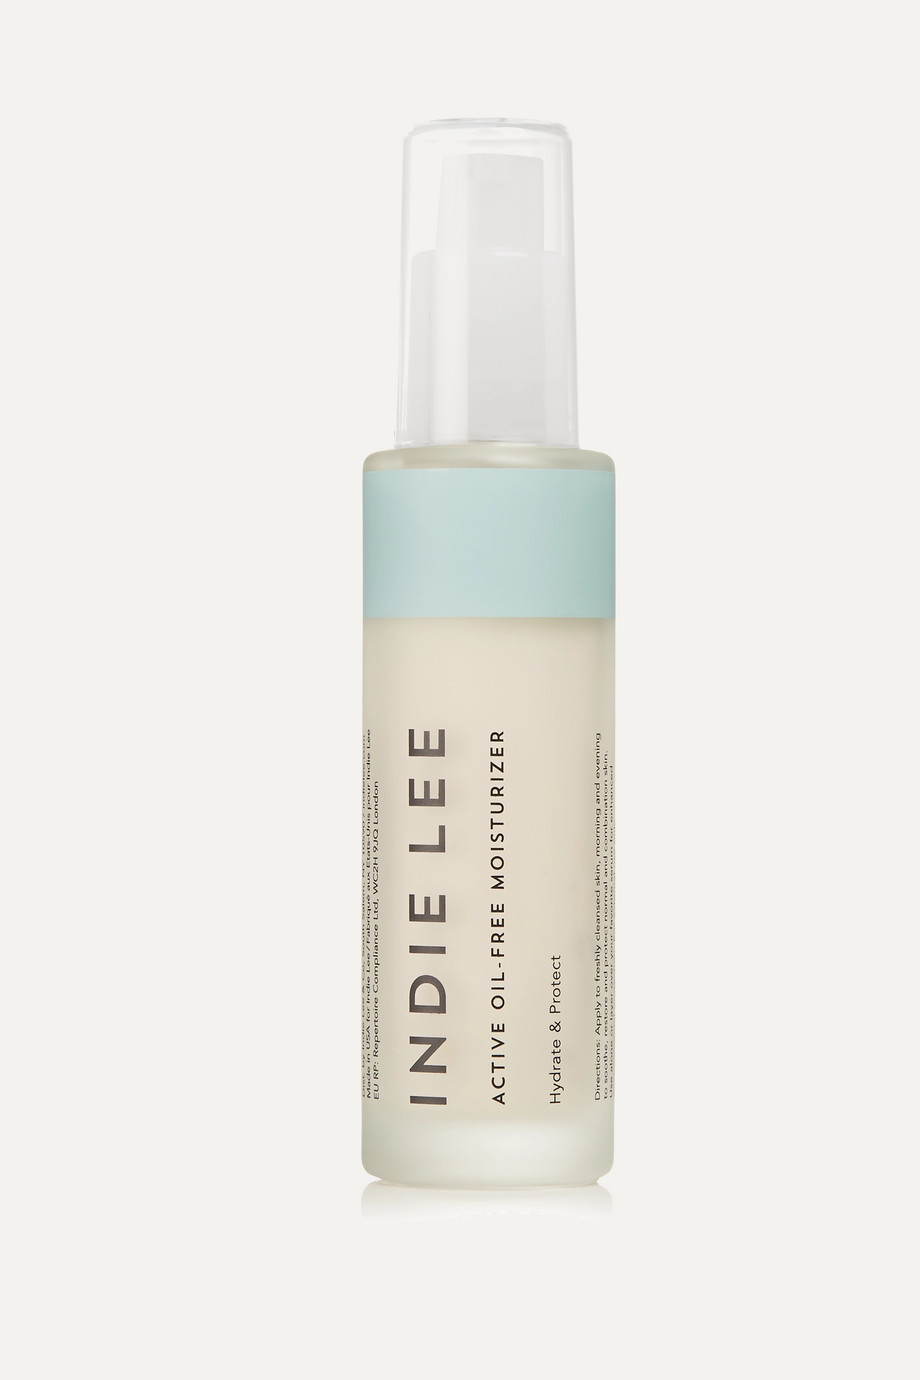 Indie Lee Active Oil Free Moisturizer, 50ml